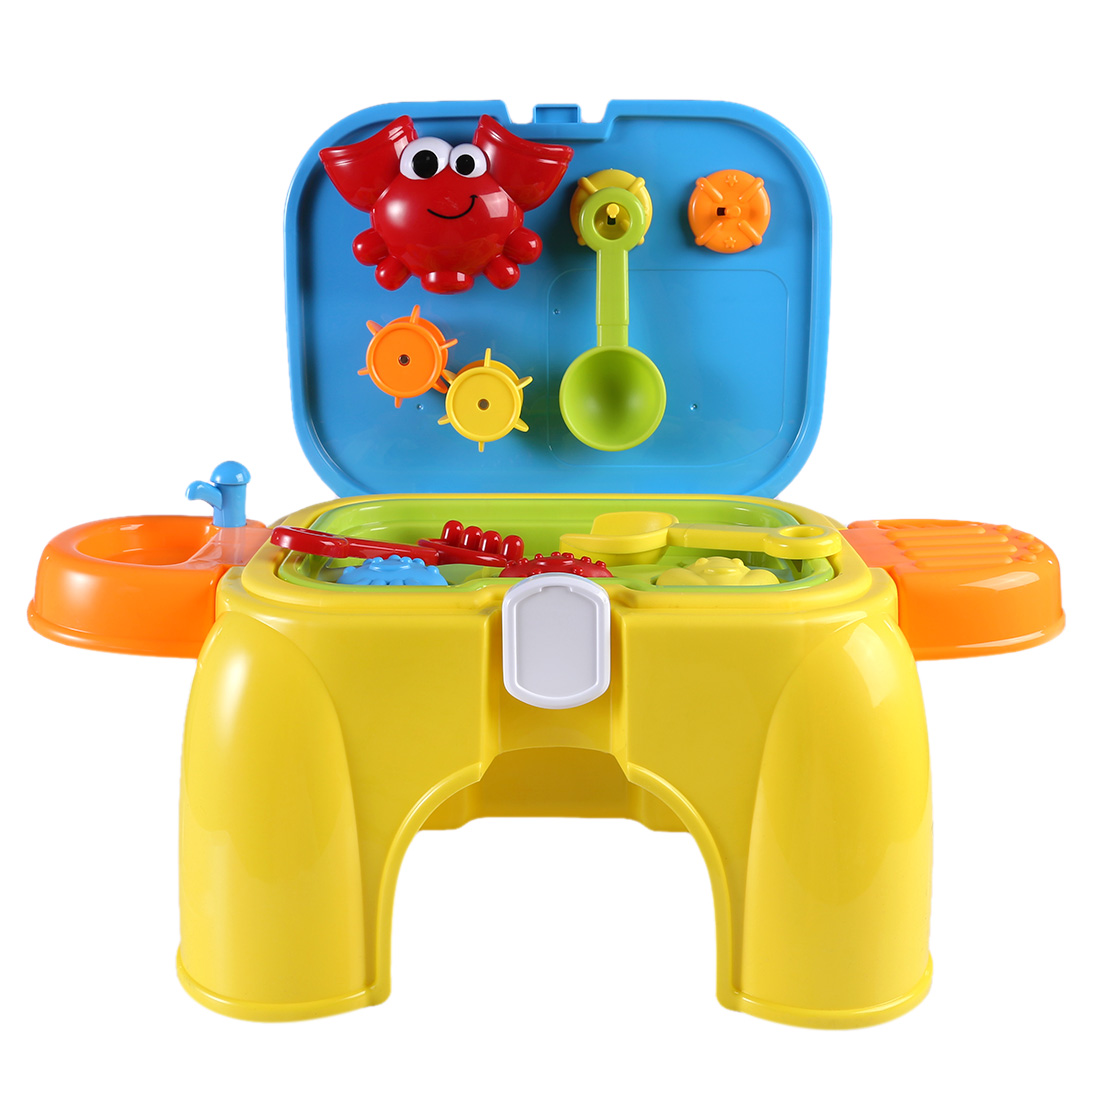 Kids Beach Toys Play Sand Toy Pretend Play With Retractable Storage Chair Educational Toys Gift For Kids Toys For Children